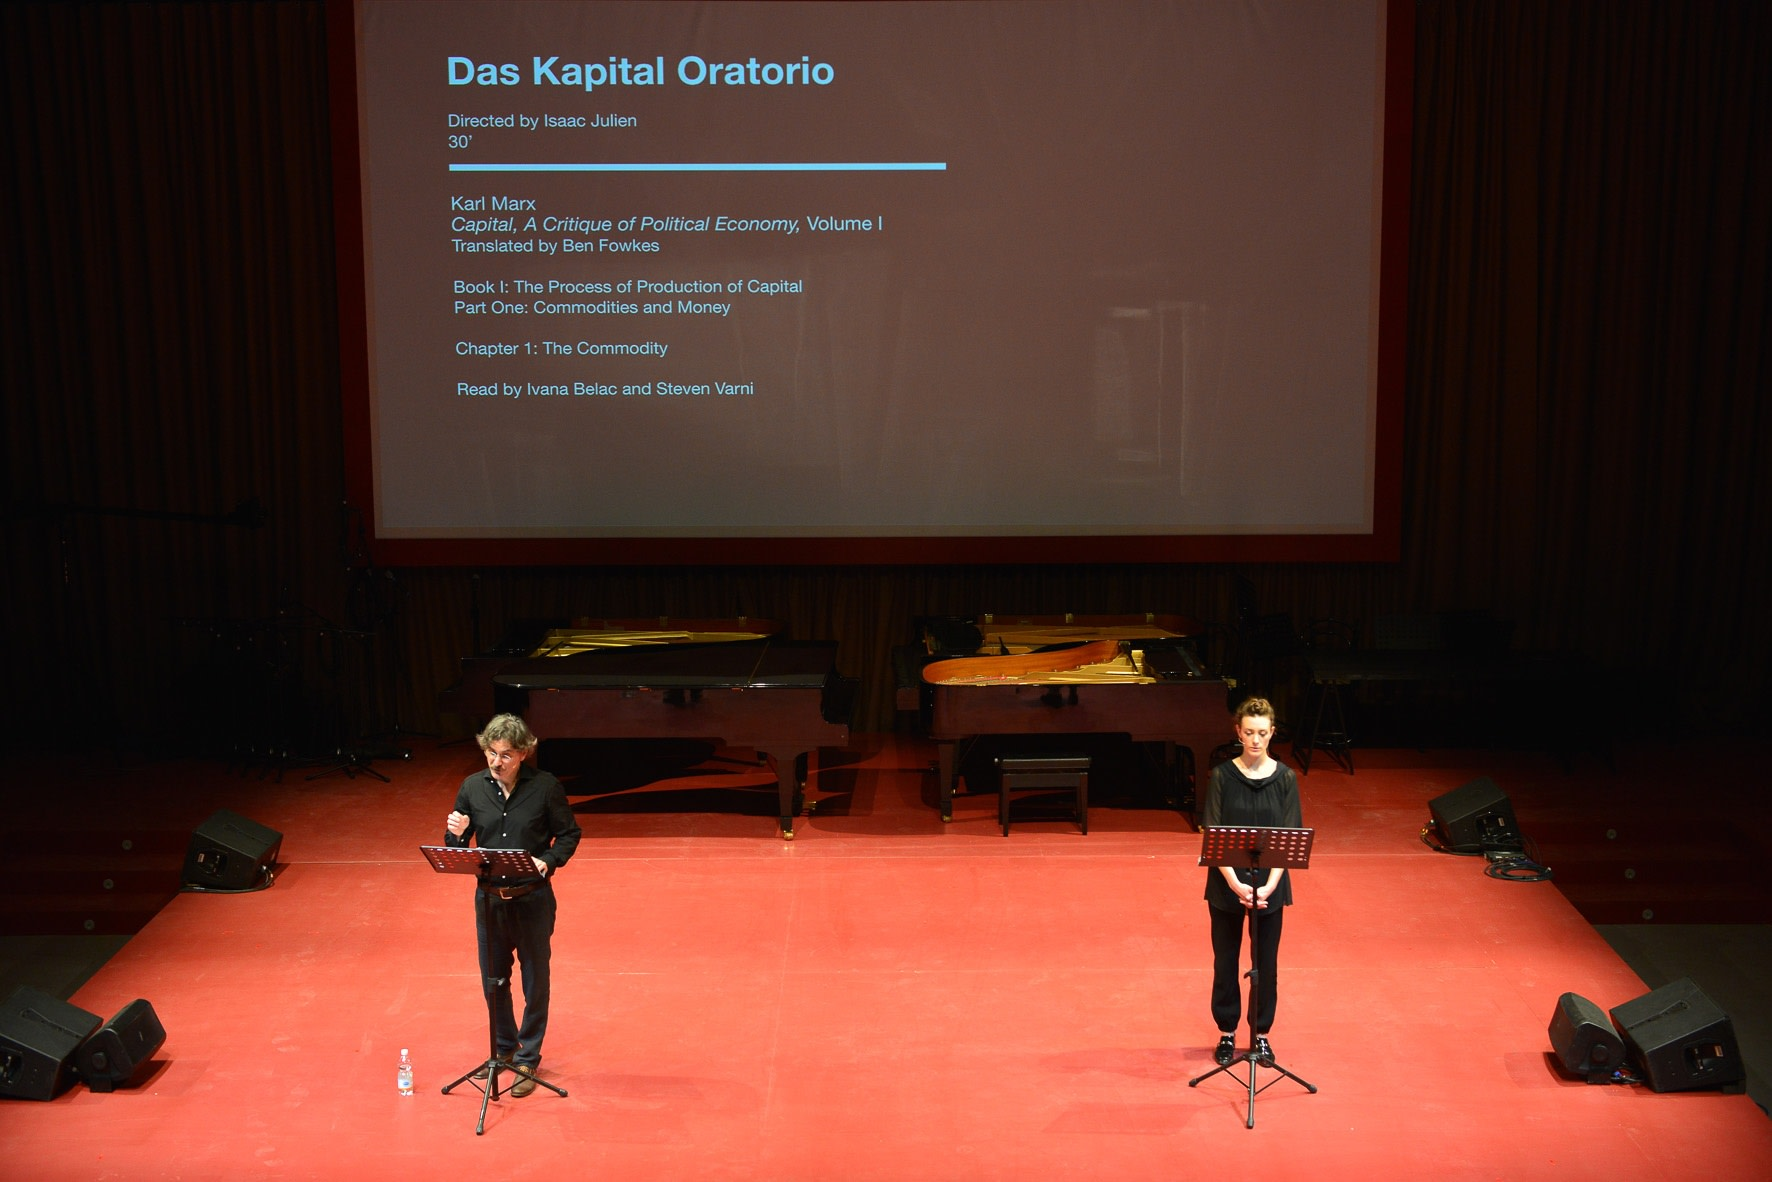 DAS KAPITAL ORATORIO, Venice Biennale, 2015  Seven-month live reading of Karl Marx's Das Kapital (1867-1894)